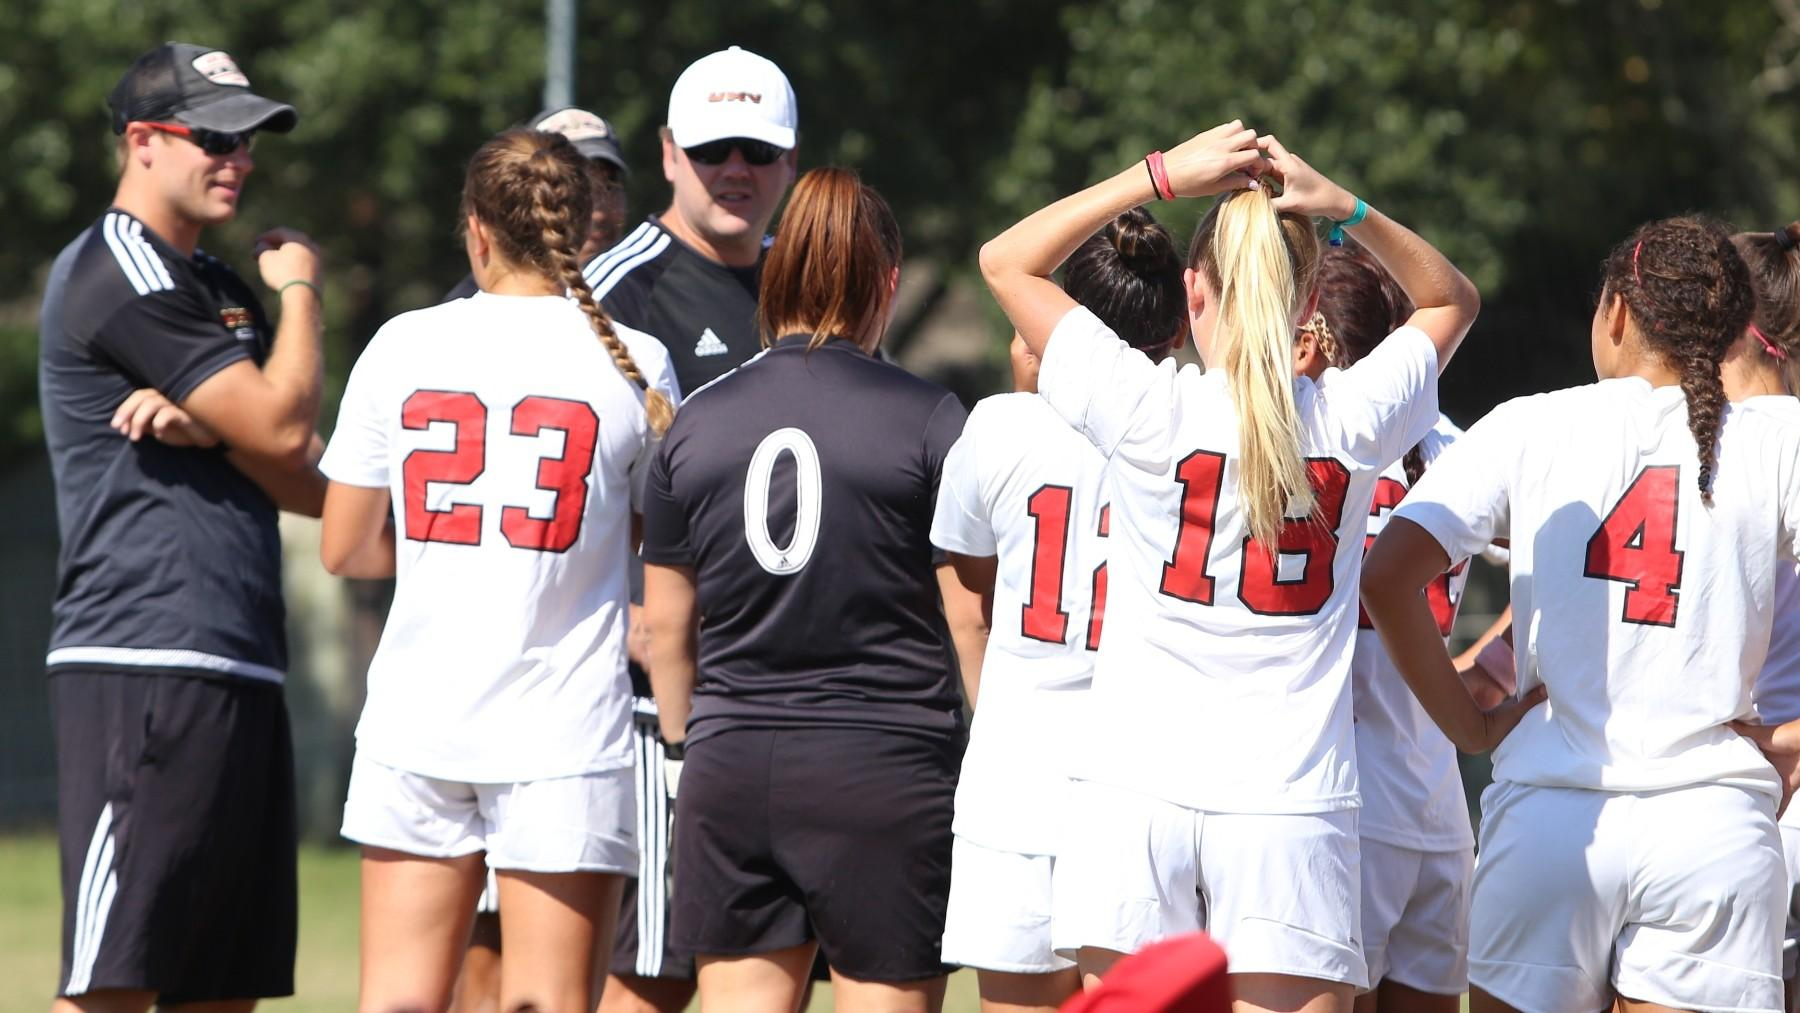 UHV will host a Women's Soccer Elite ID Camp on Saturday, March 25.